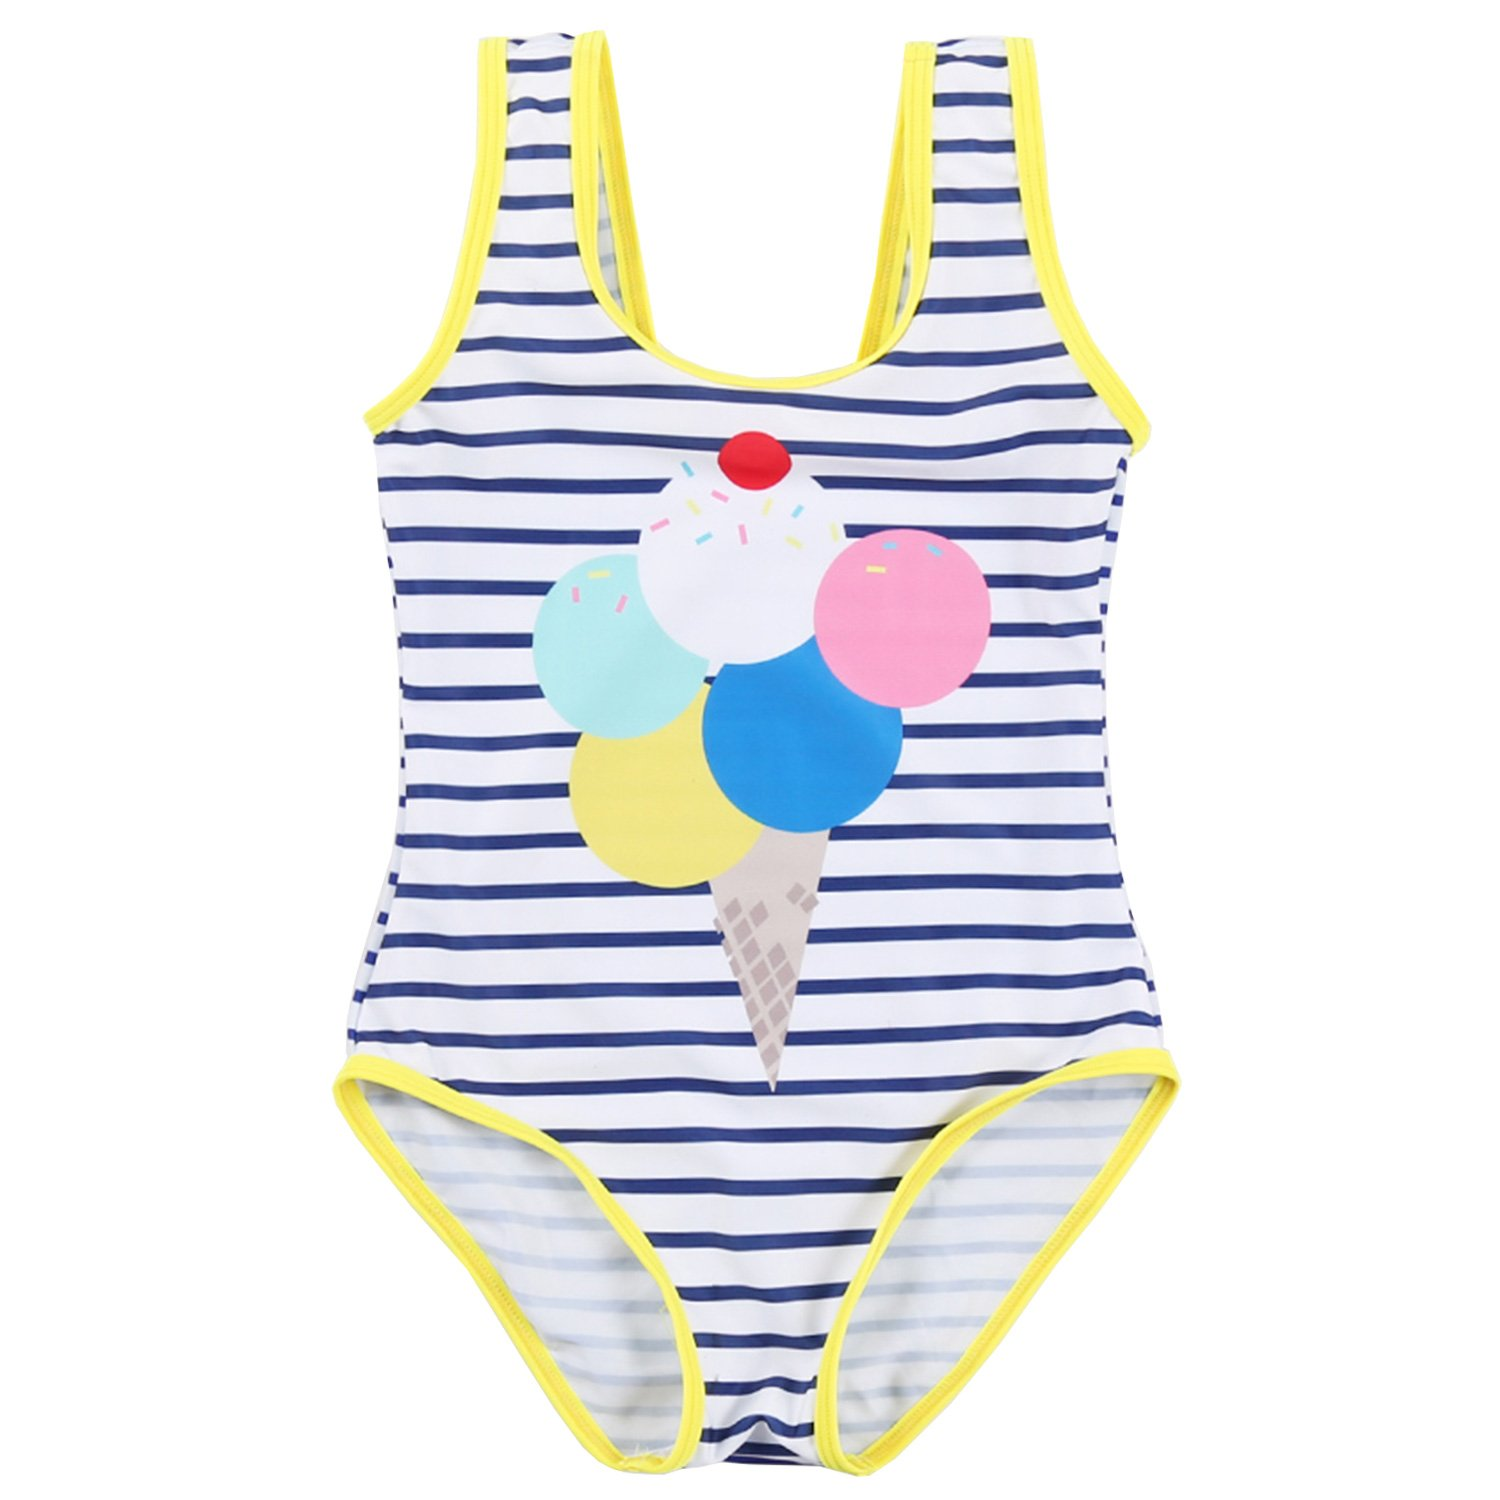 TERODACO Little Girls One Piece Swimsuit Bathing Suit Ruffle Beach Swimwear